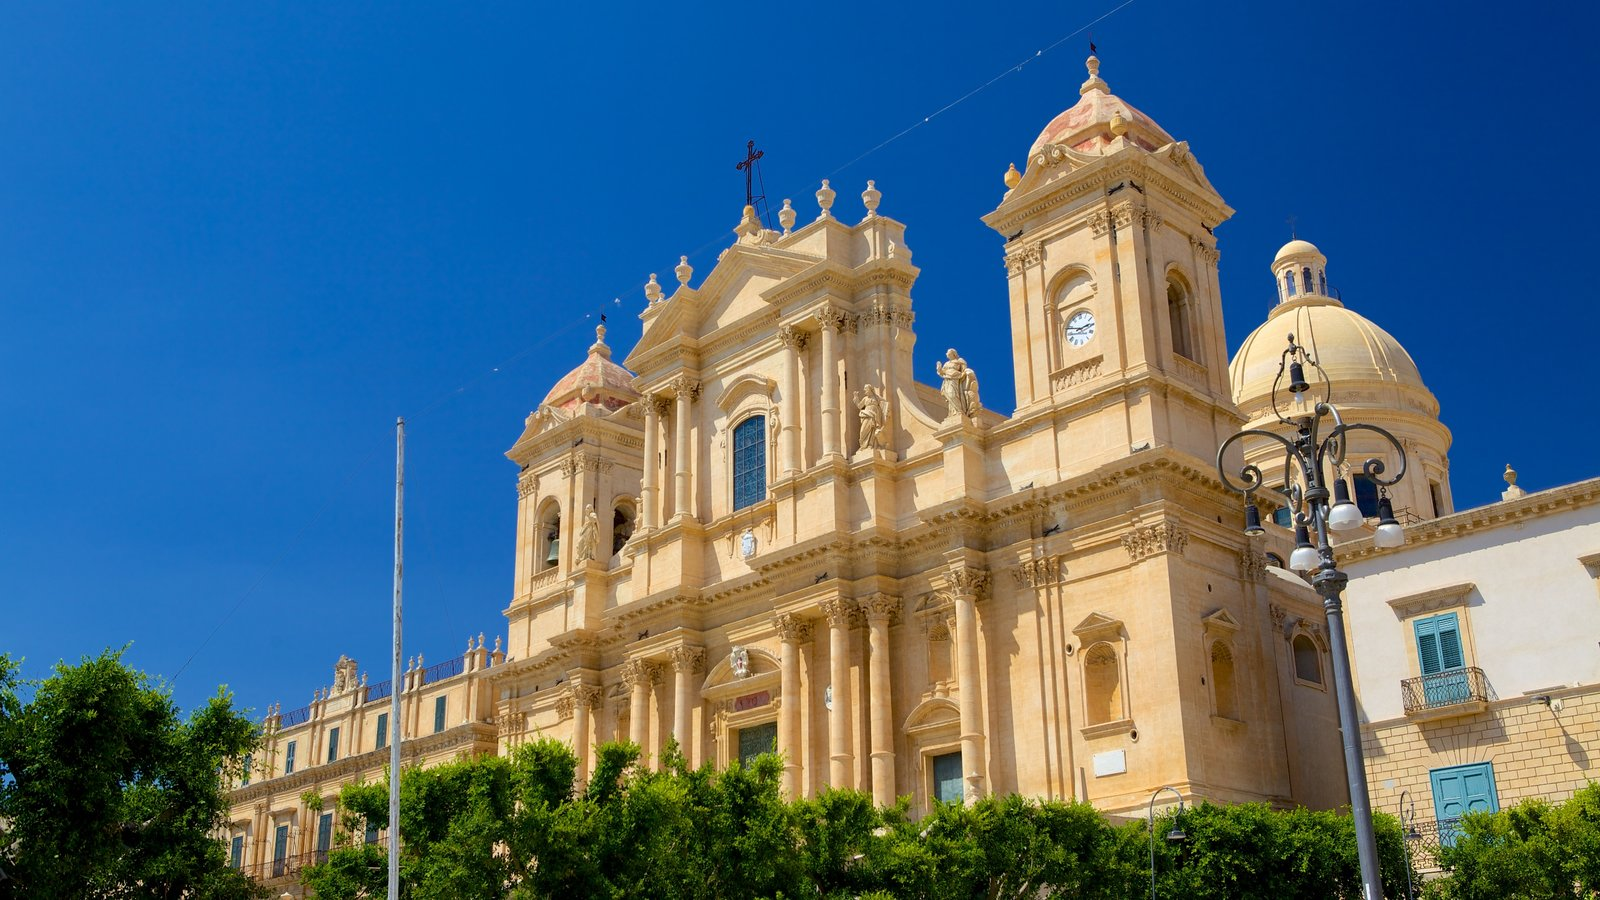 Cathedral of Noto which includes heritage architecture and a church or cathedral